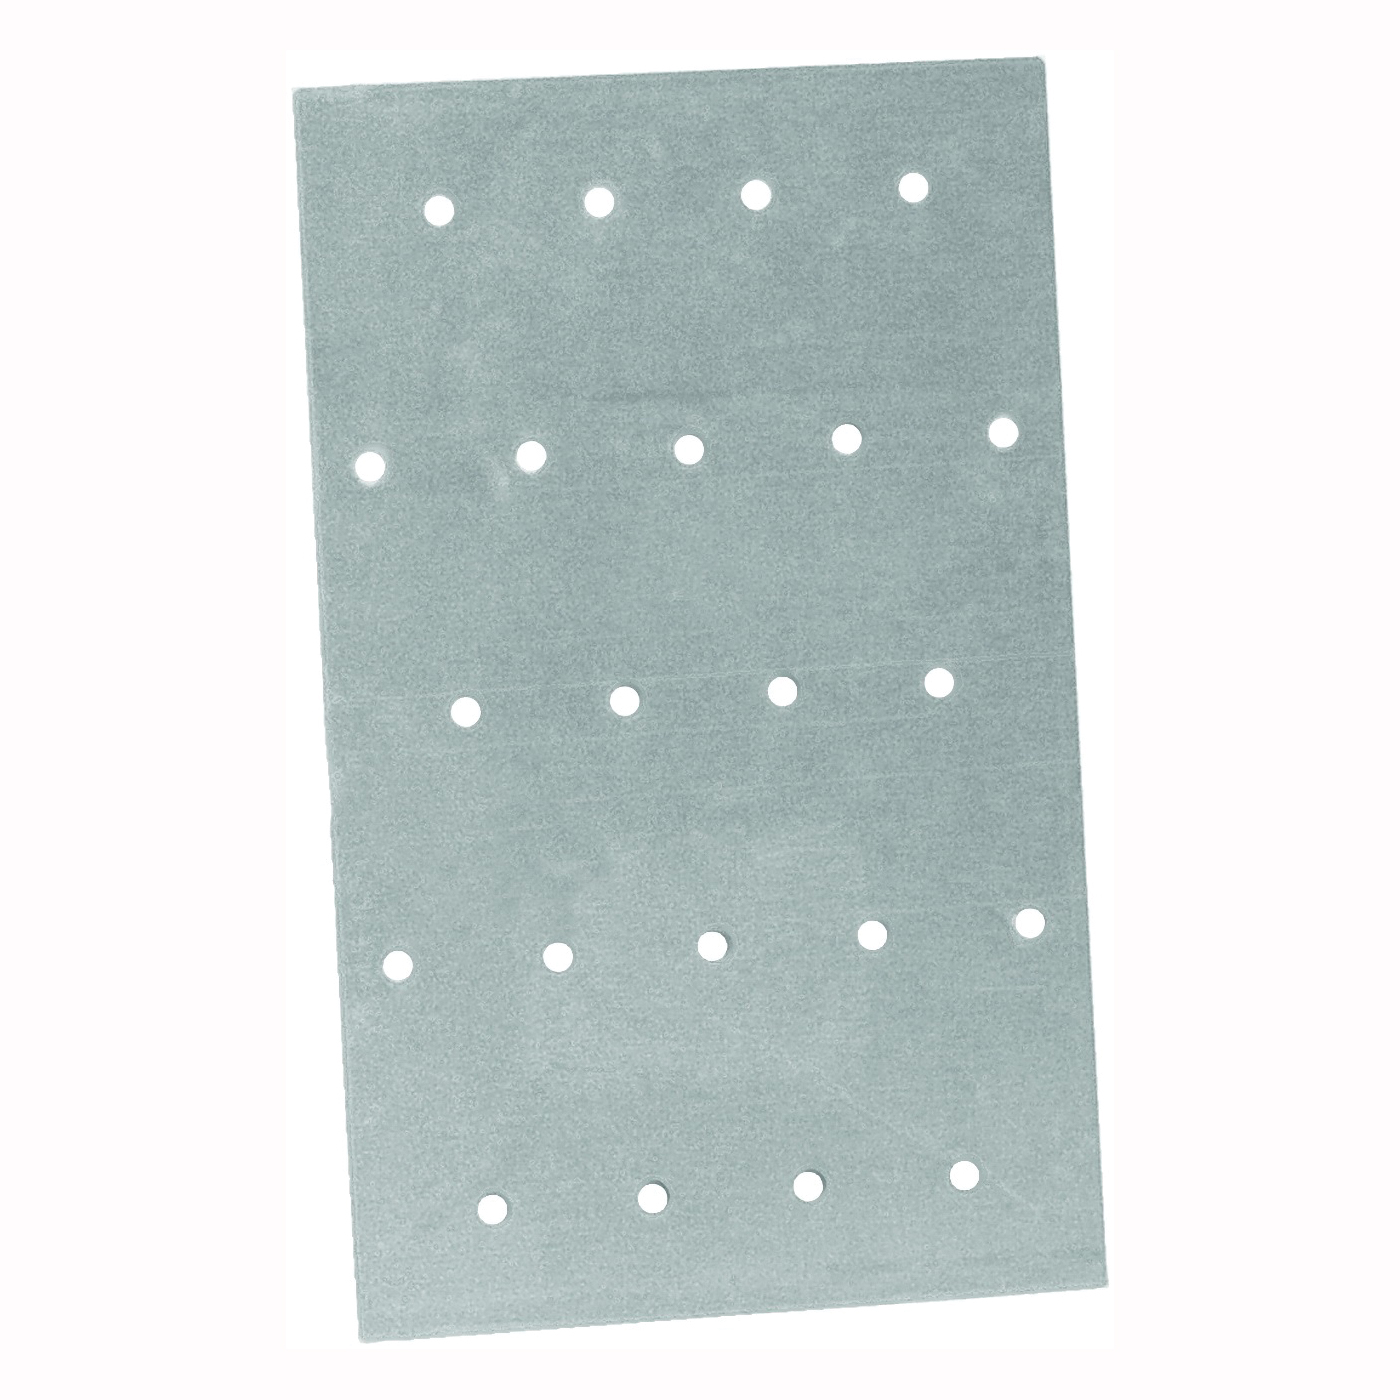 Picture of MiTek NP35 Truss Mending Plate, 5 in L, 3-1/8 in W, Steel, Galvanized, Nail Mounting